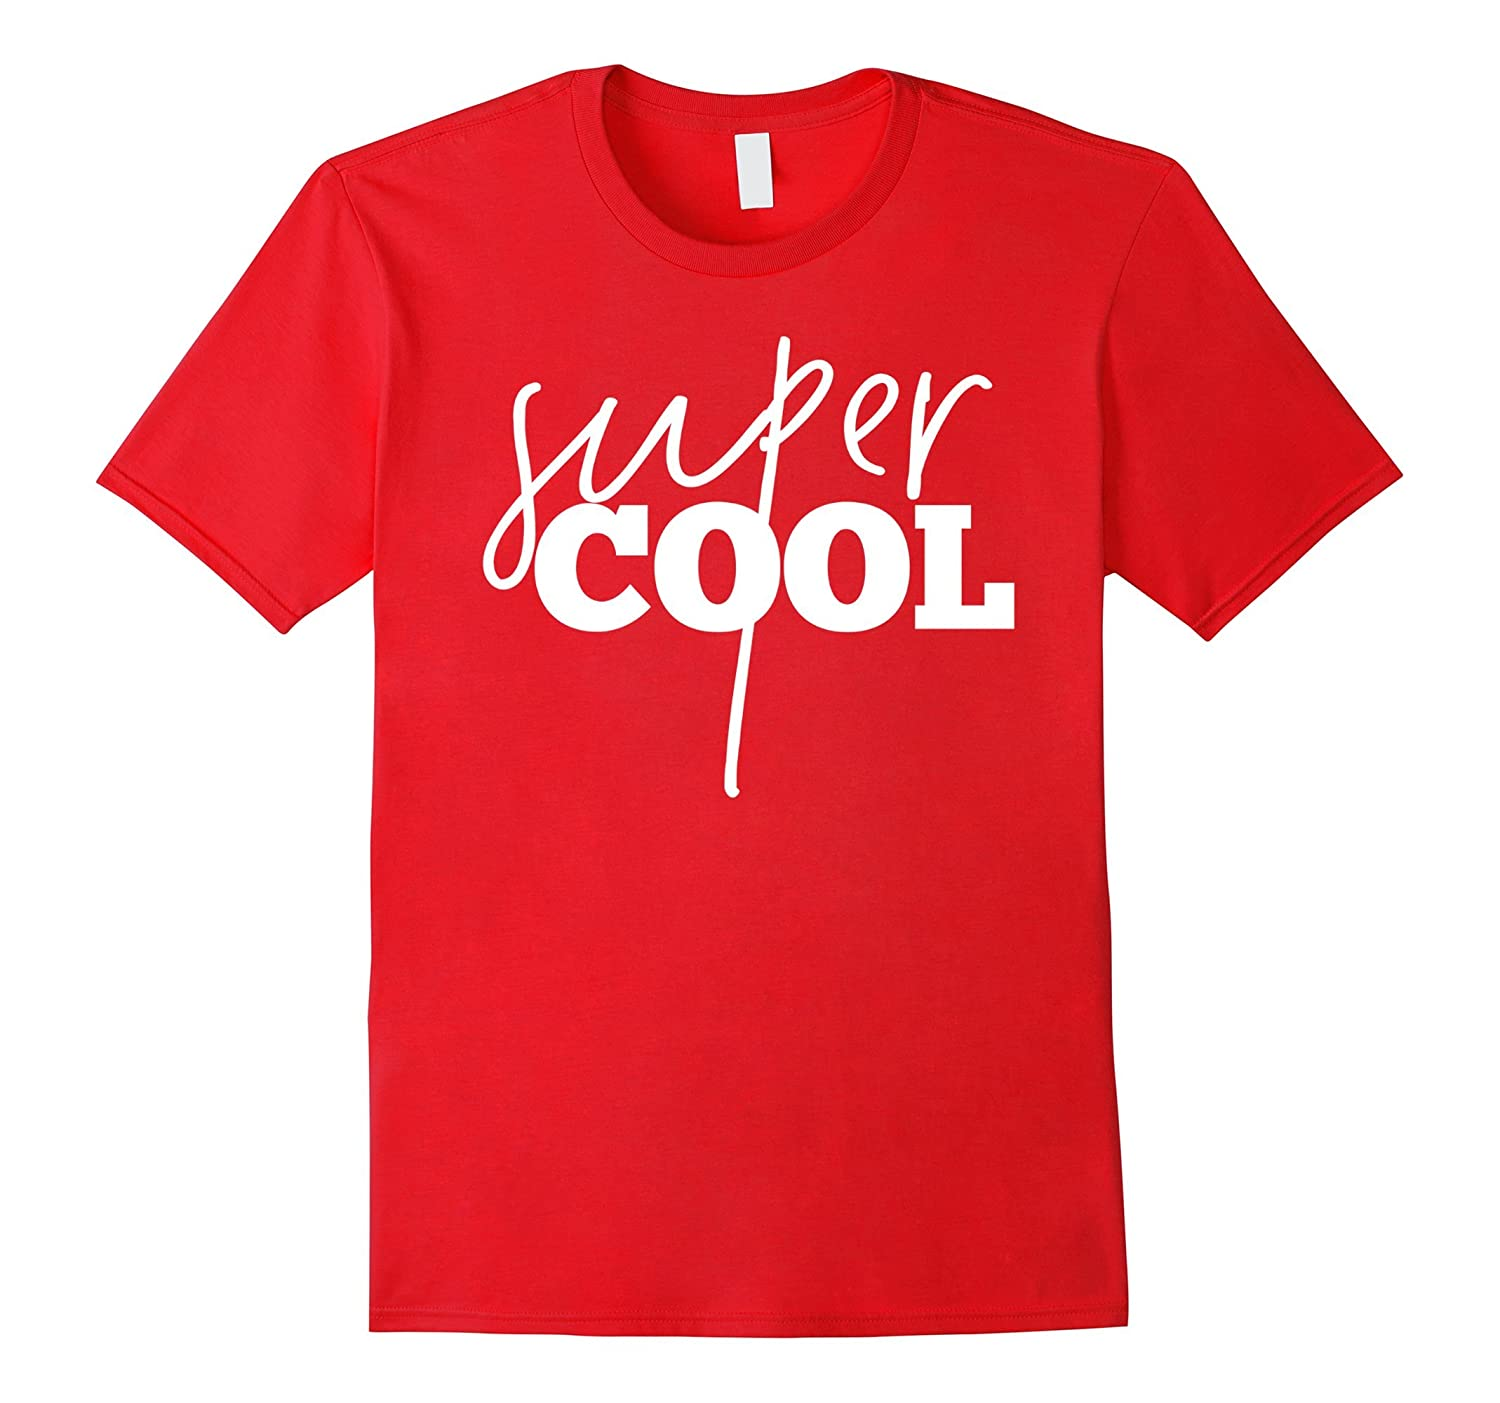 Super Cool Hilarious Simple Sarcastic Bold Graphic Tee Shirt-TH